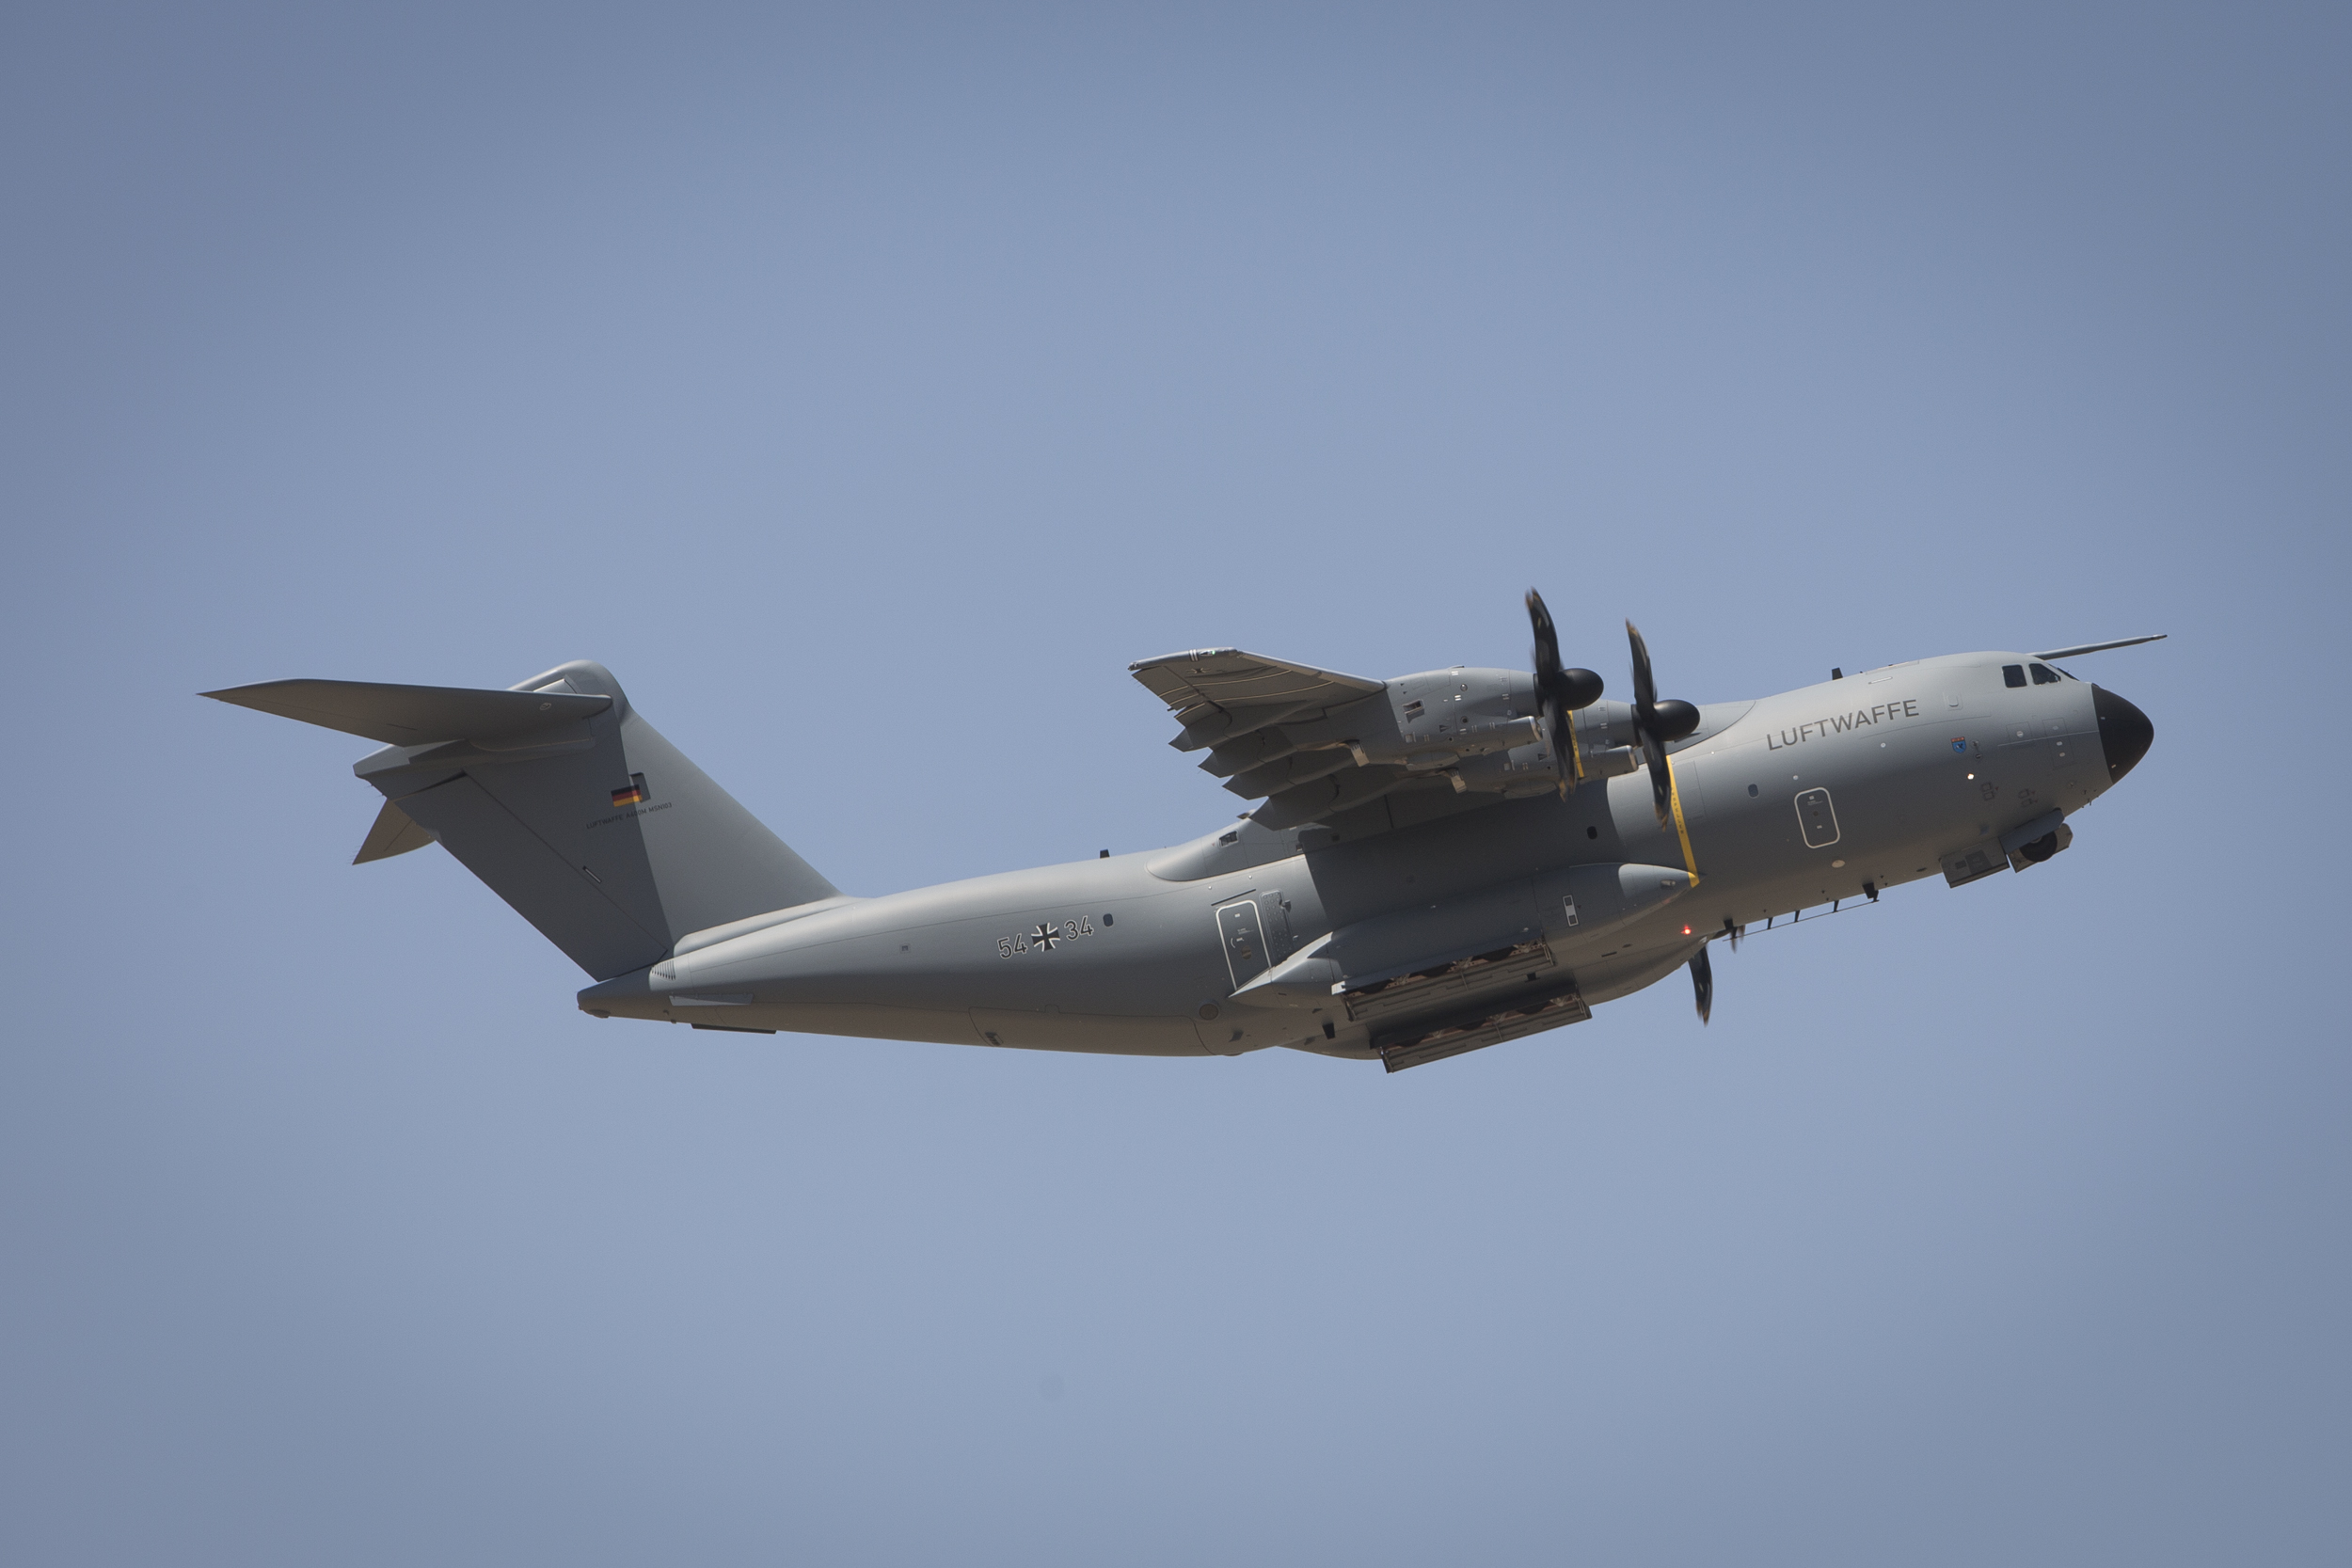 Photo by AirbusDefence